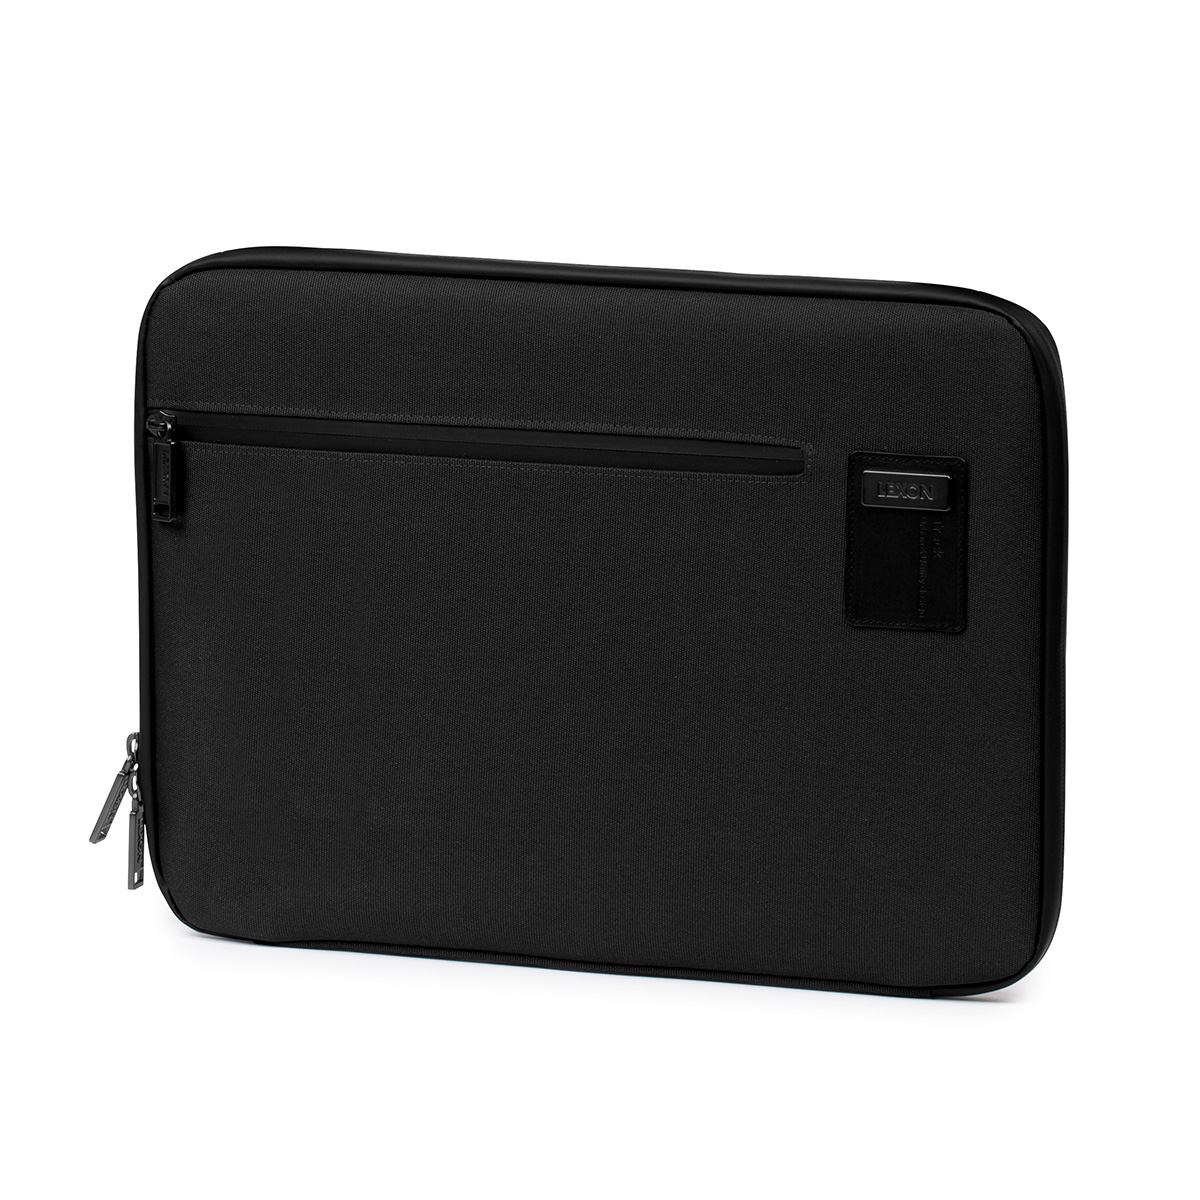 image Laptop brief document bag